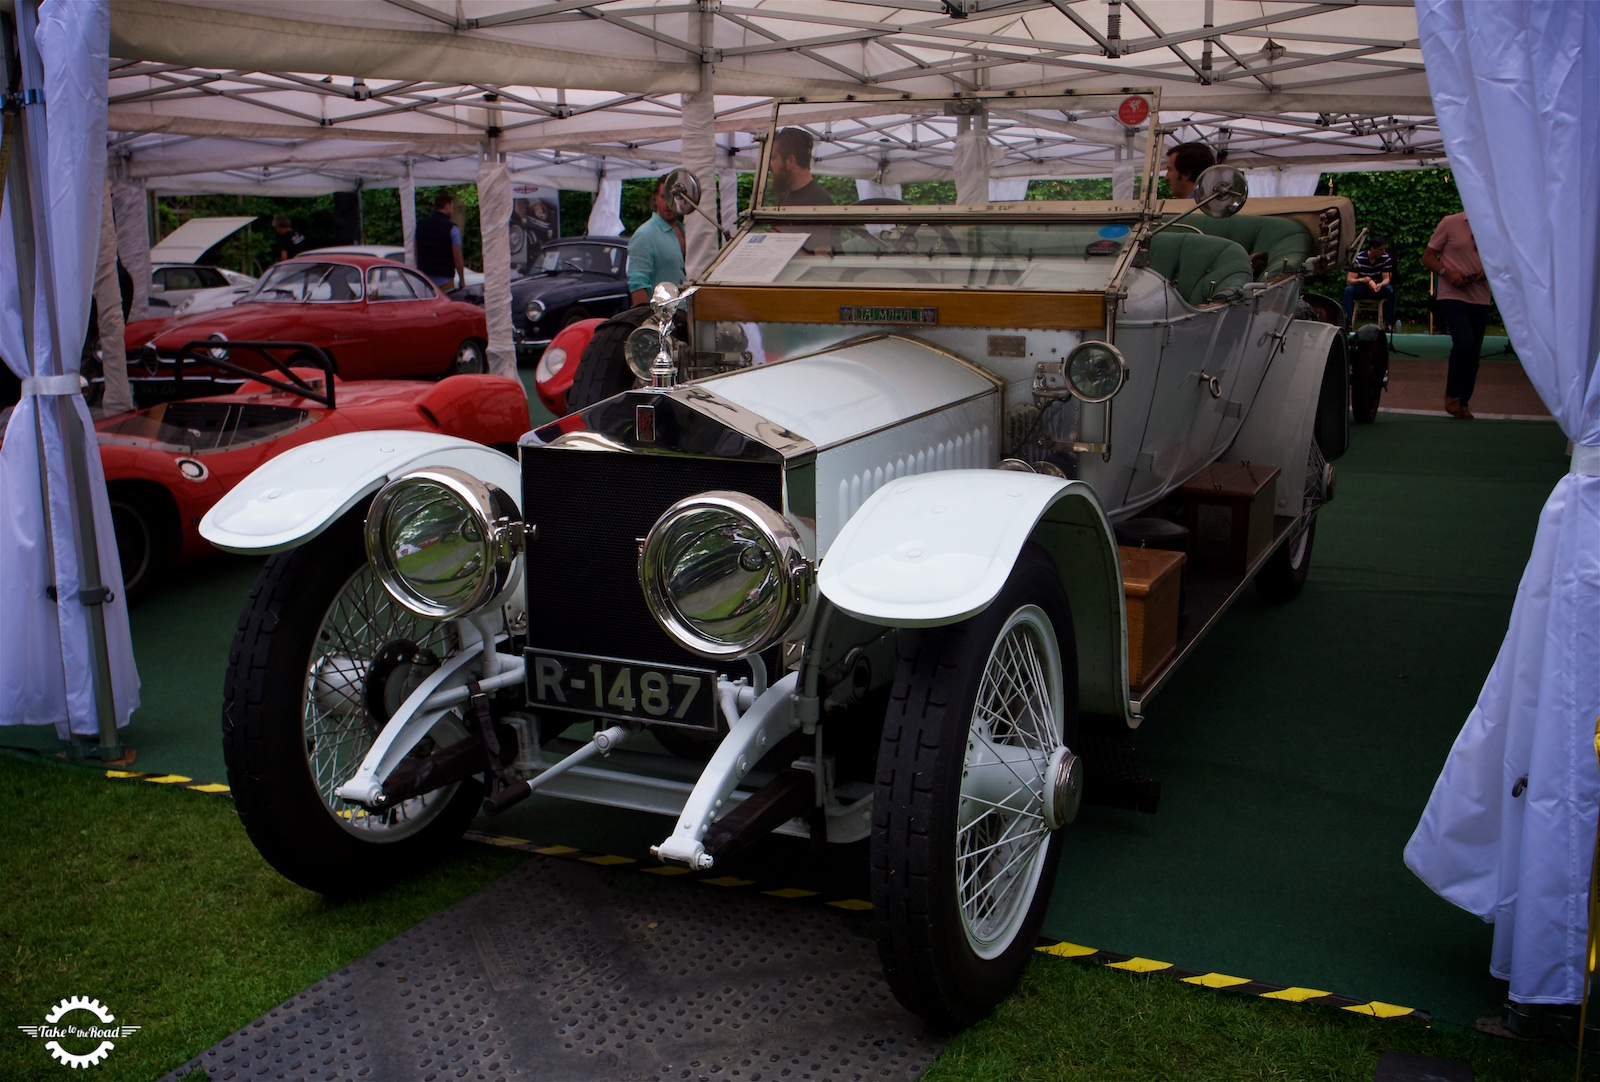 Trio of Royal Cars to grace Blenheim lawns at Salon Prive